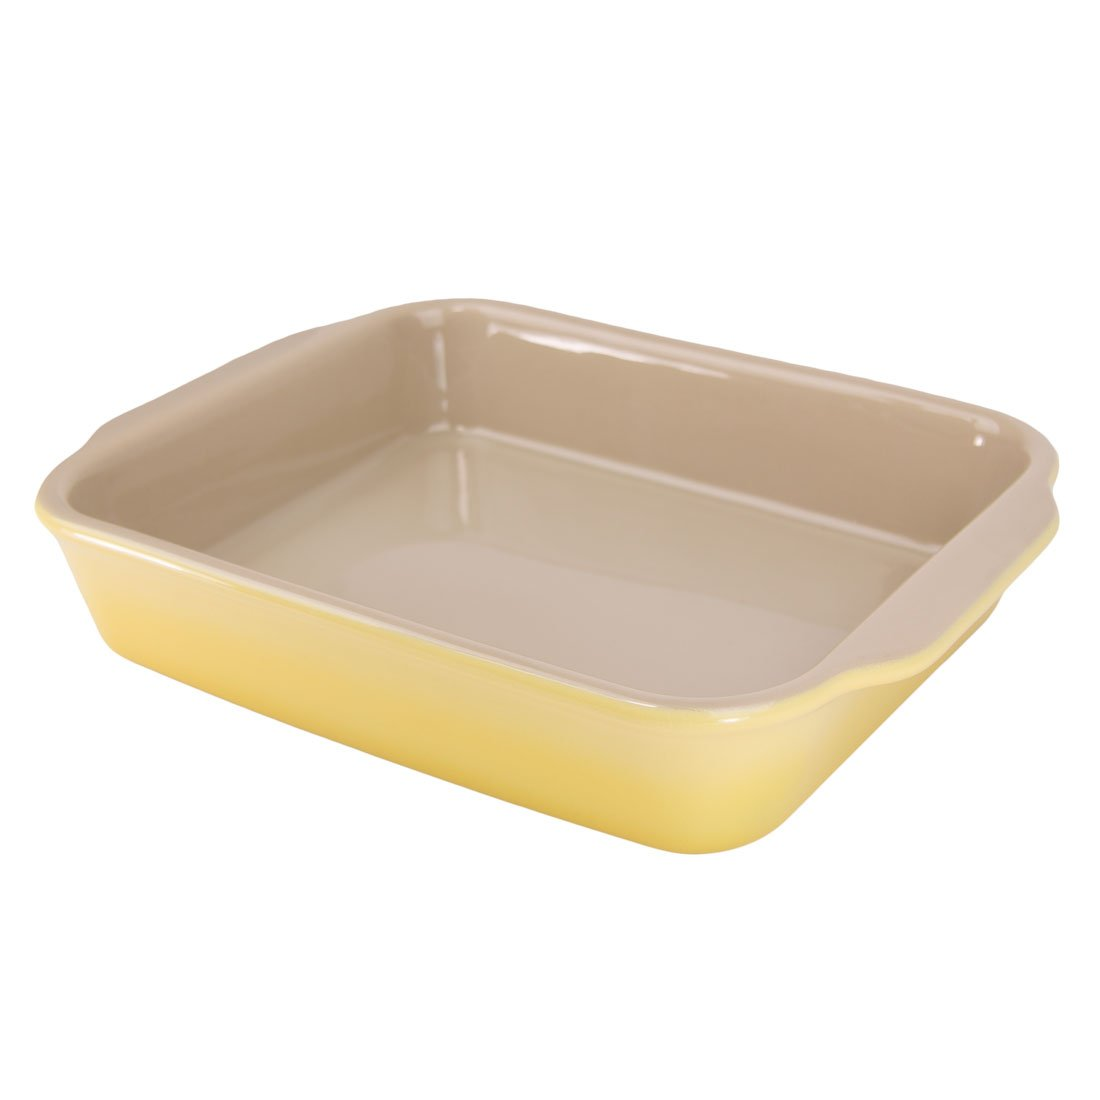 "American Bakeware 10'' x 8.5"" Rectangular Casserole Baker - Non Stick Ceramic - Heat Resistant to 400 °F - No Metals or other Harmful Materials - Safe for Oven, Microwave, Dishwasher - Made in the USA"